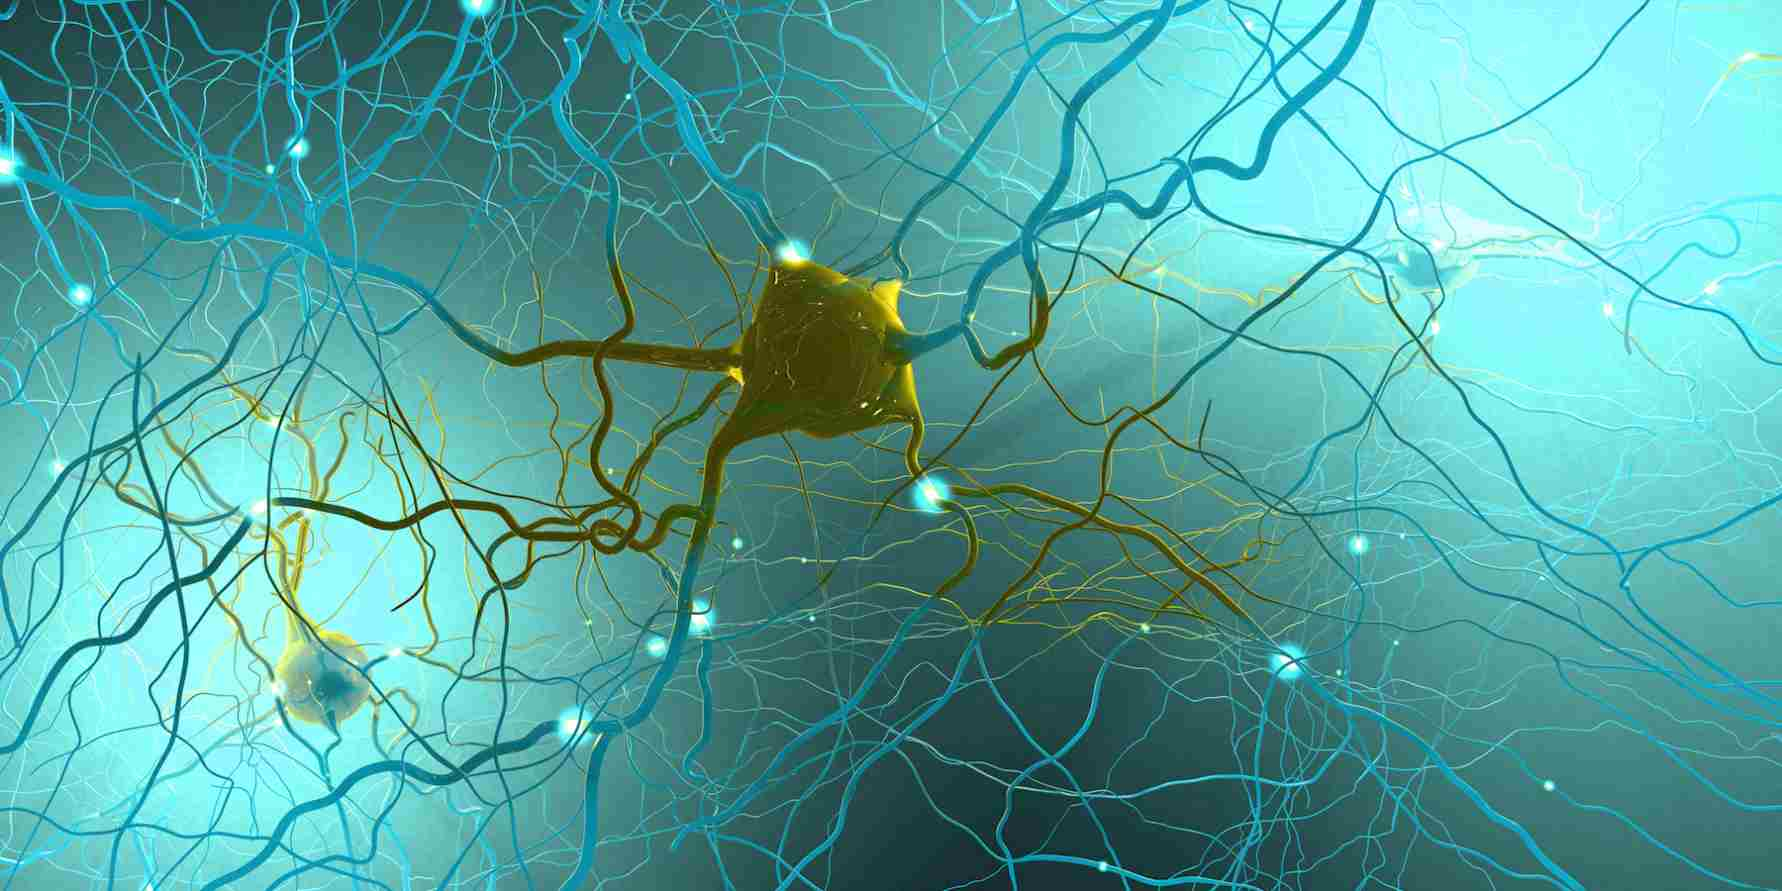 Focus Feature on Neuroscience: Preclinical progress on neurodegeneration